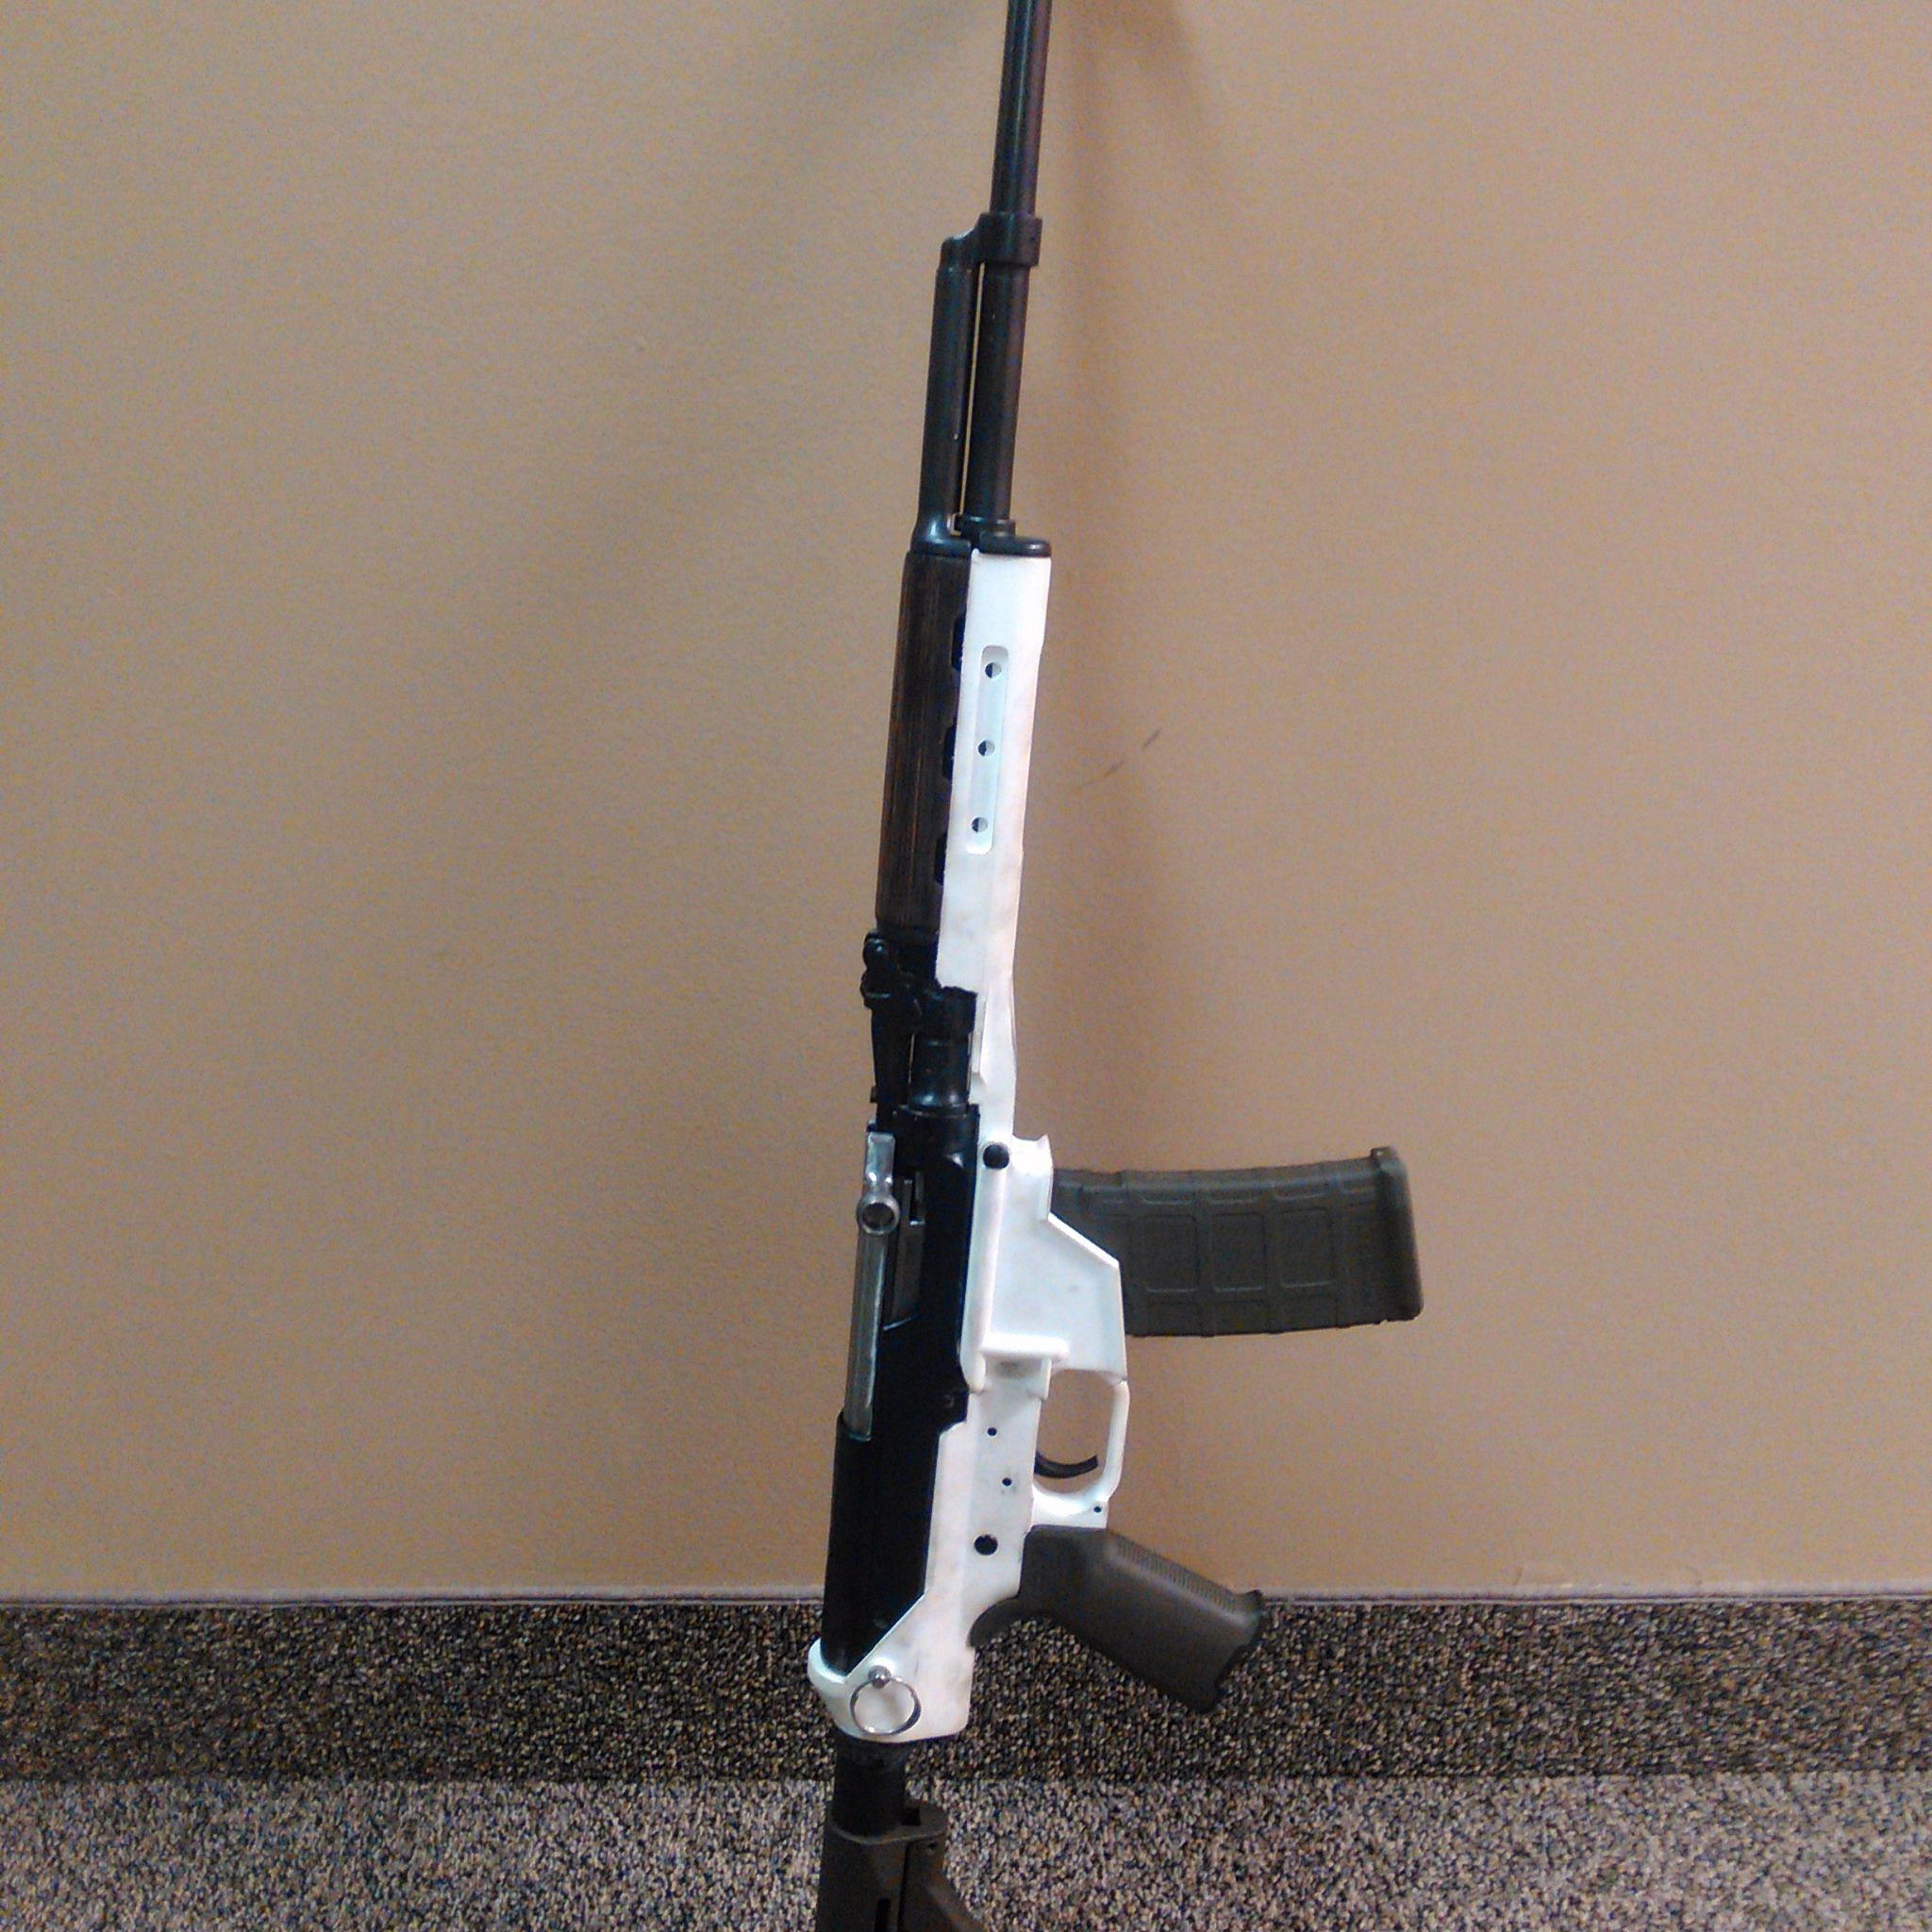 The SKS is seeing a lot of love in Canada lately, as another